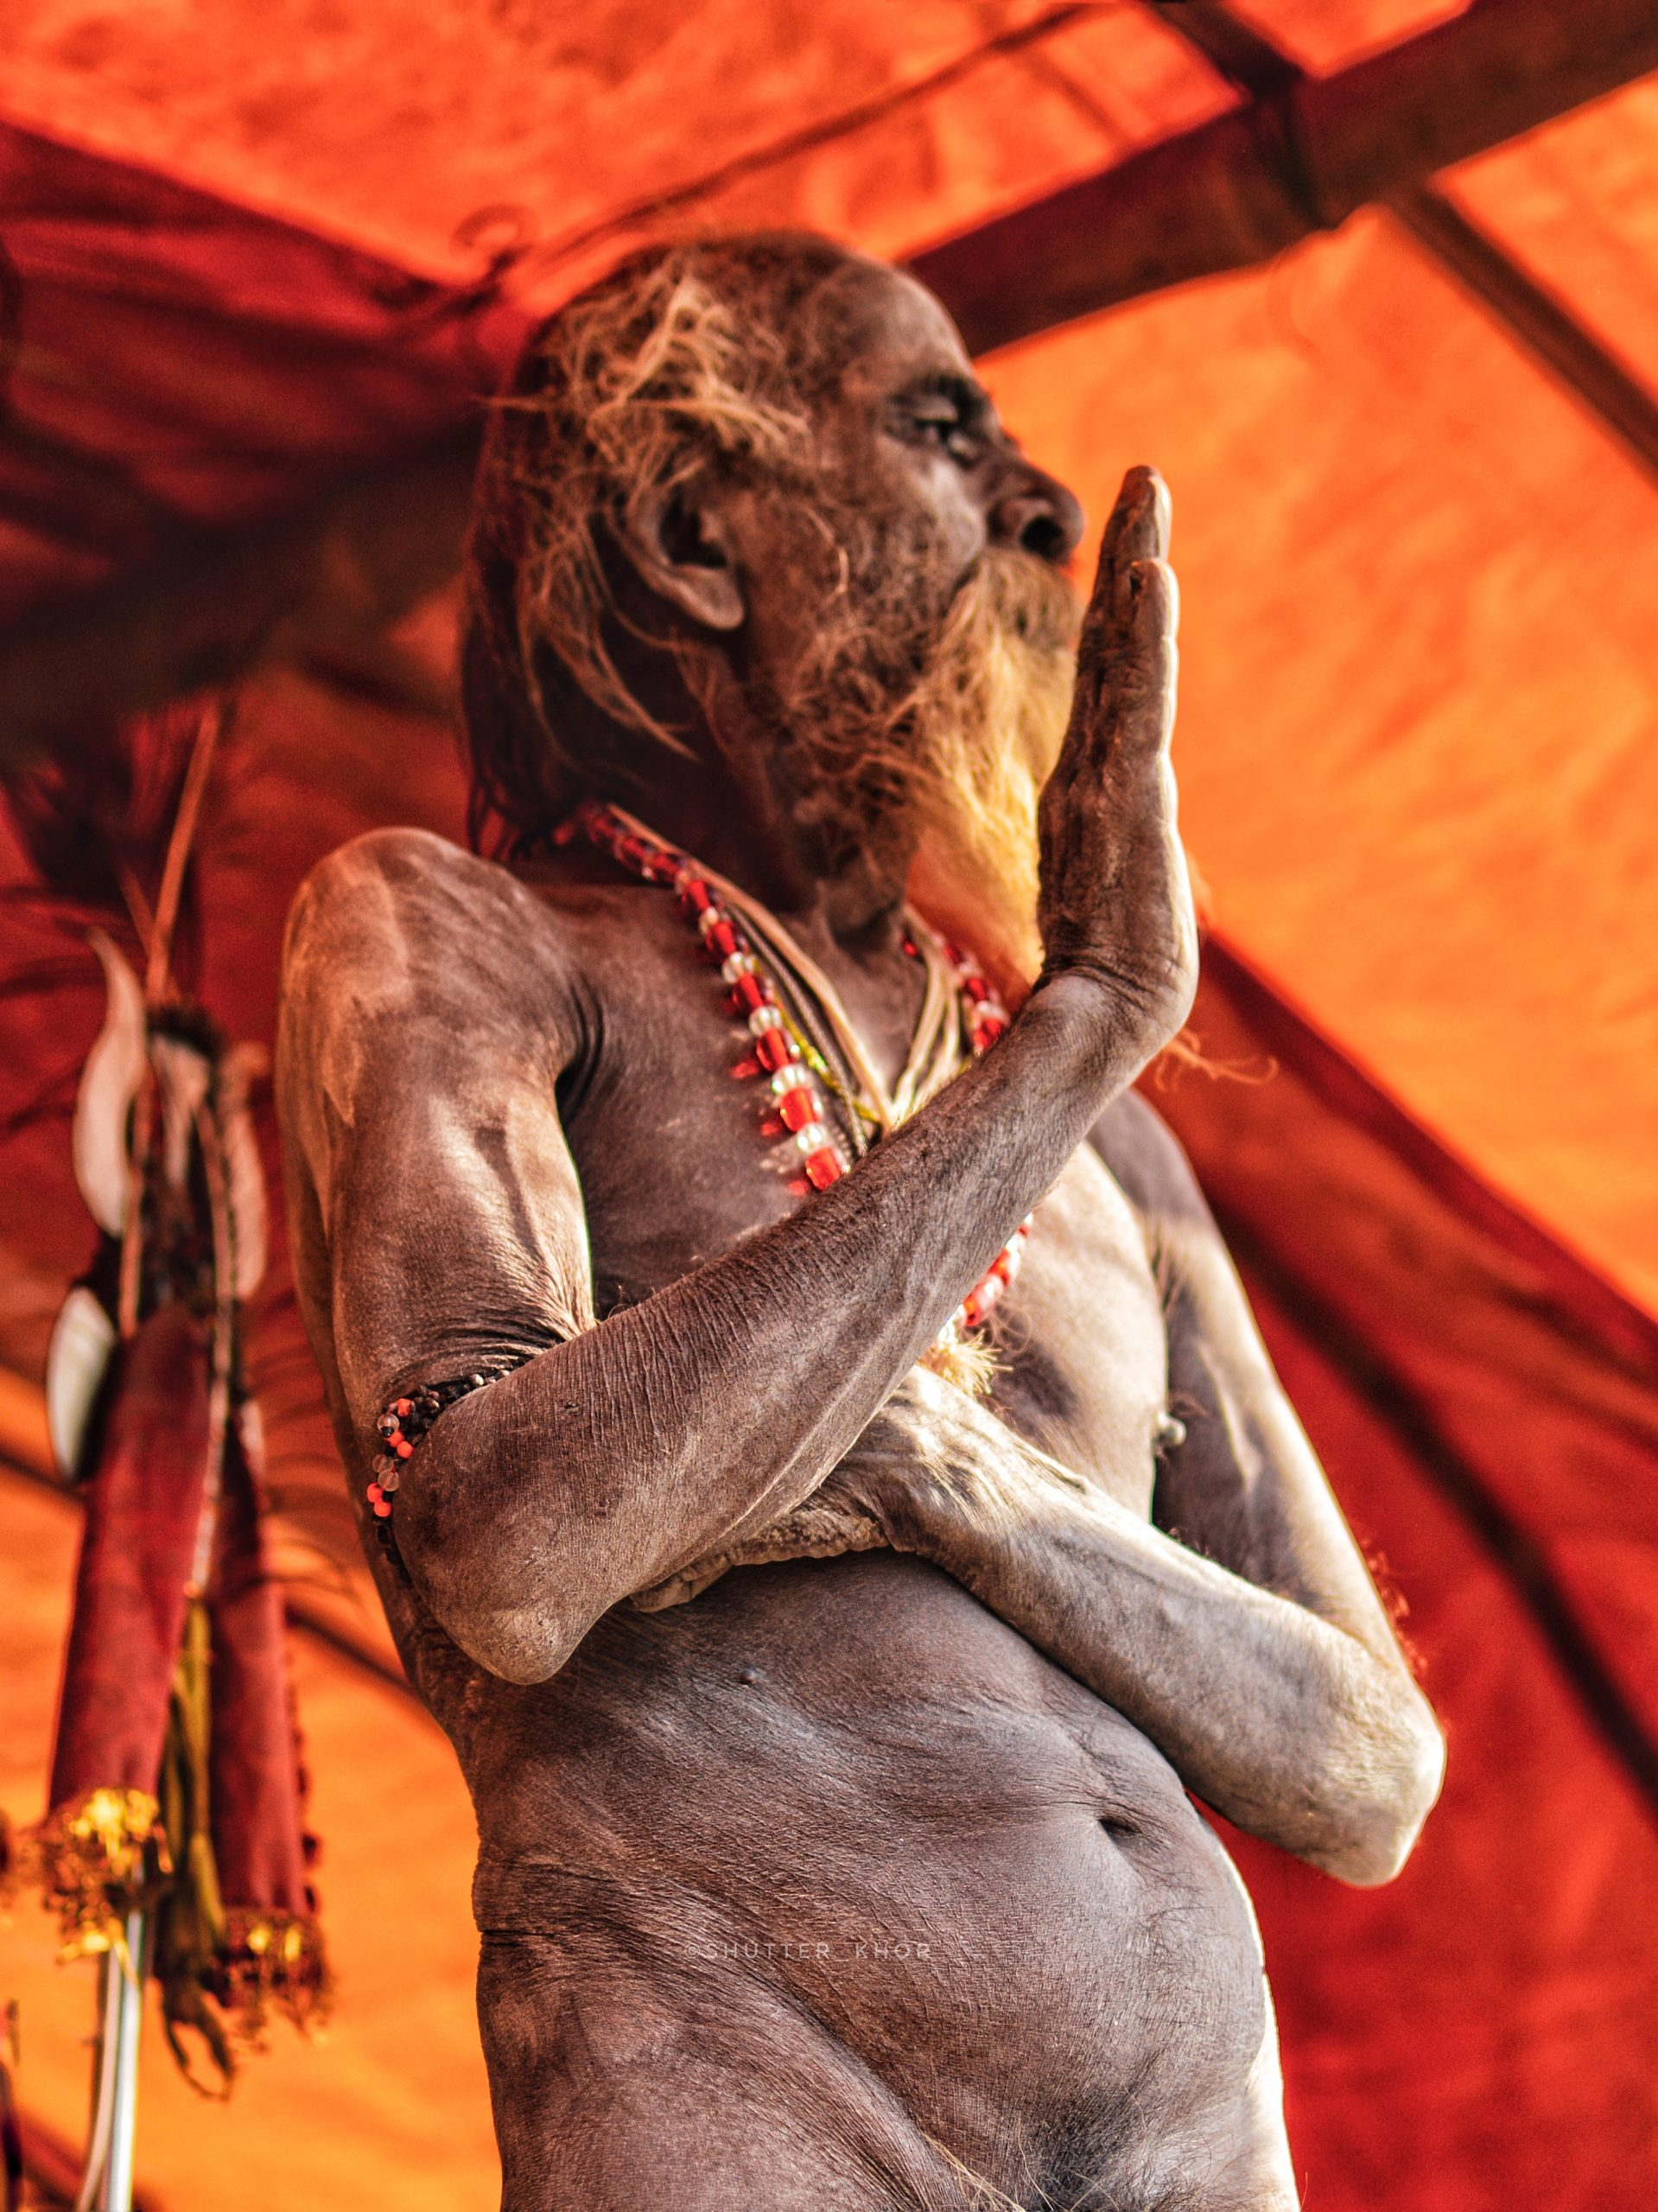 a naga sadhu offering his blessings